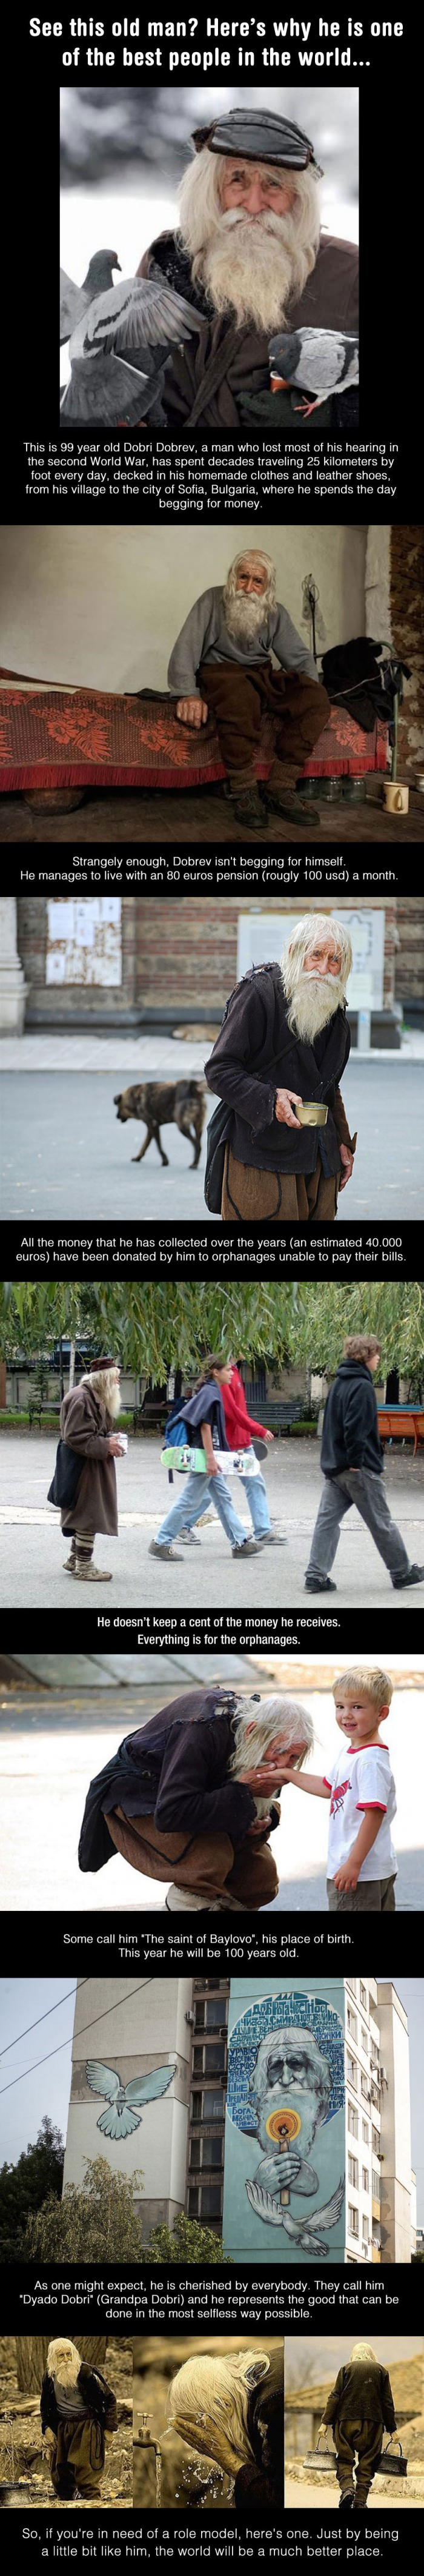 99-year-old-beggar-homeless-man-shows-true-love